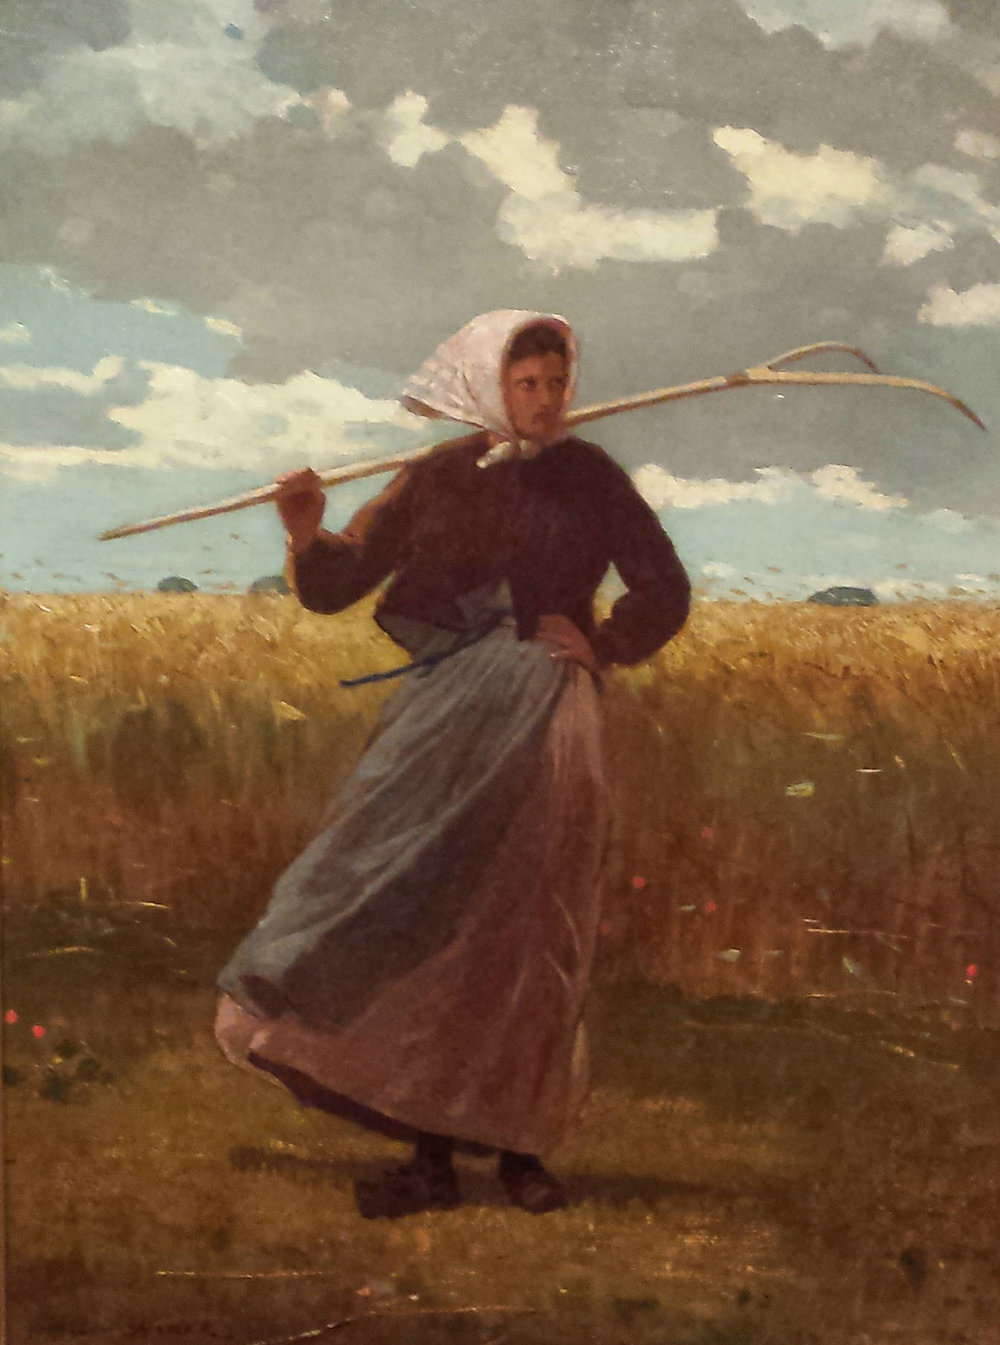 Winslow Homer's The Return of the Gleaner, on display at the Crystal Bridges Museum of American Art in Bentonville, Arkansas.